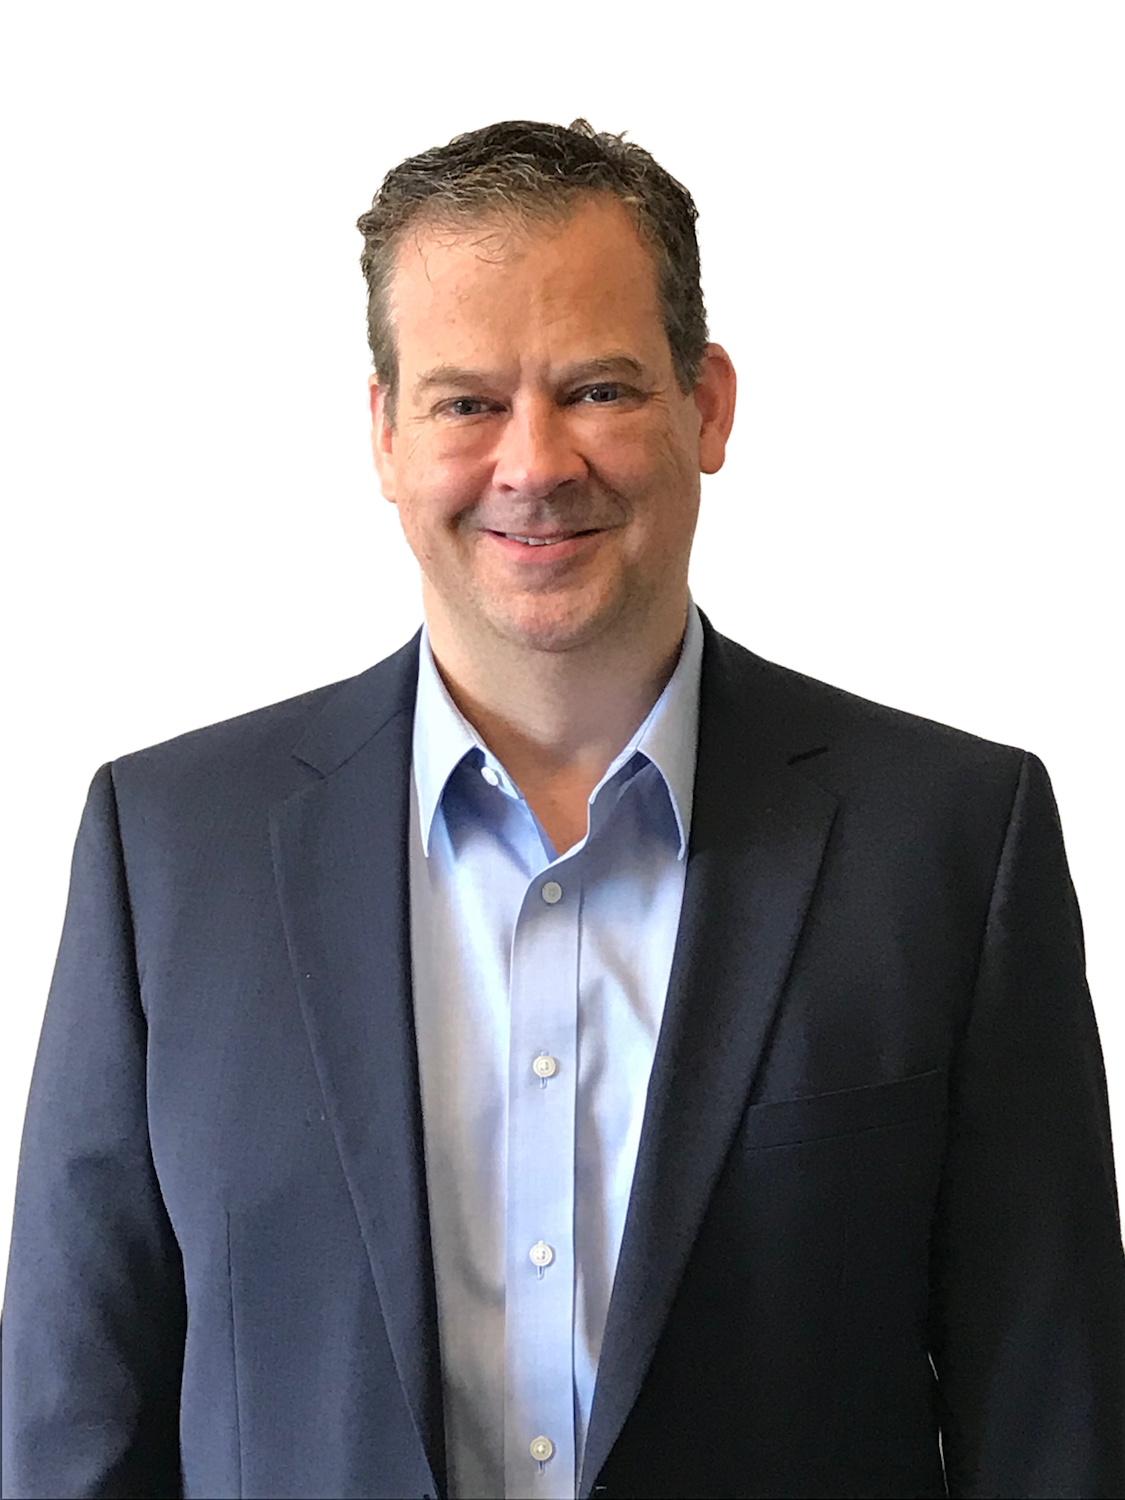 Kevin McGonigle joins the ASP family as the new CFO